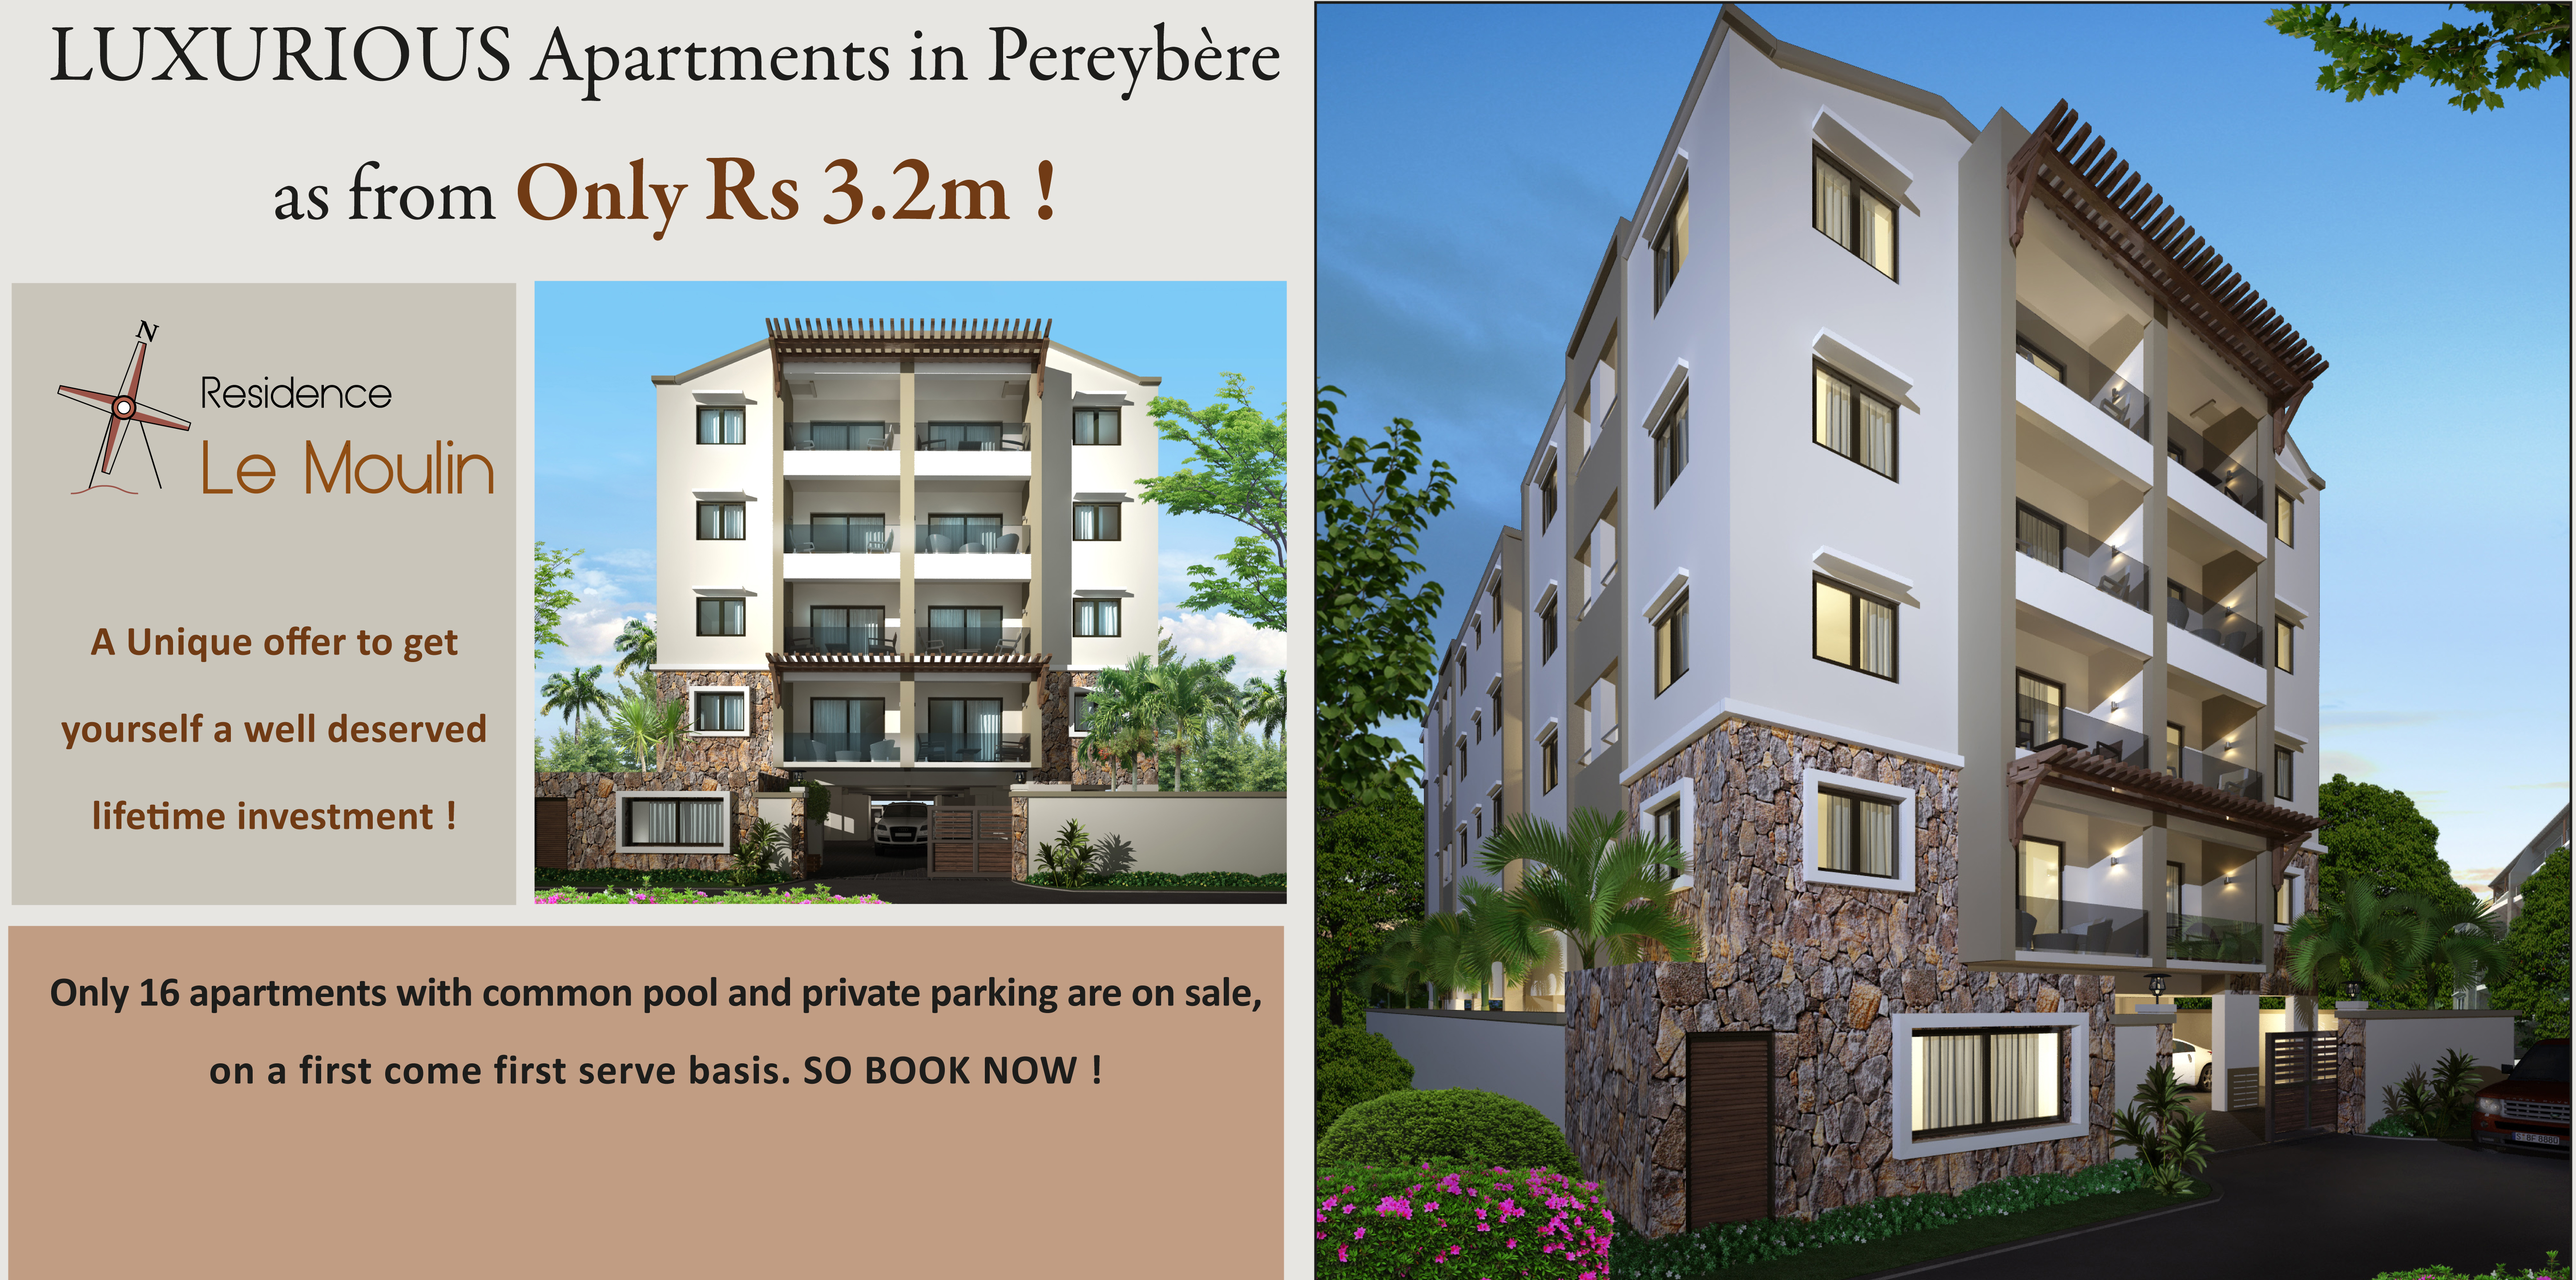 Properties For Sale In Pereybere Mauritius